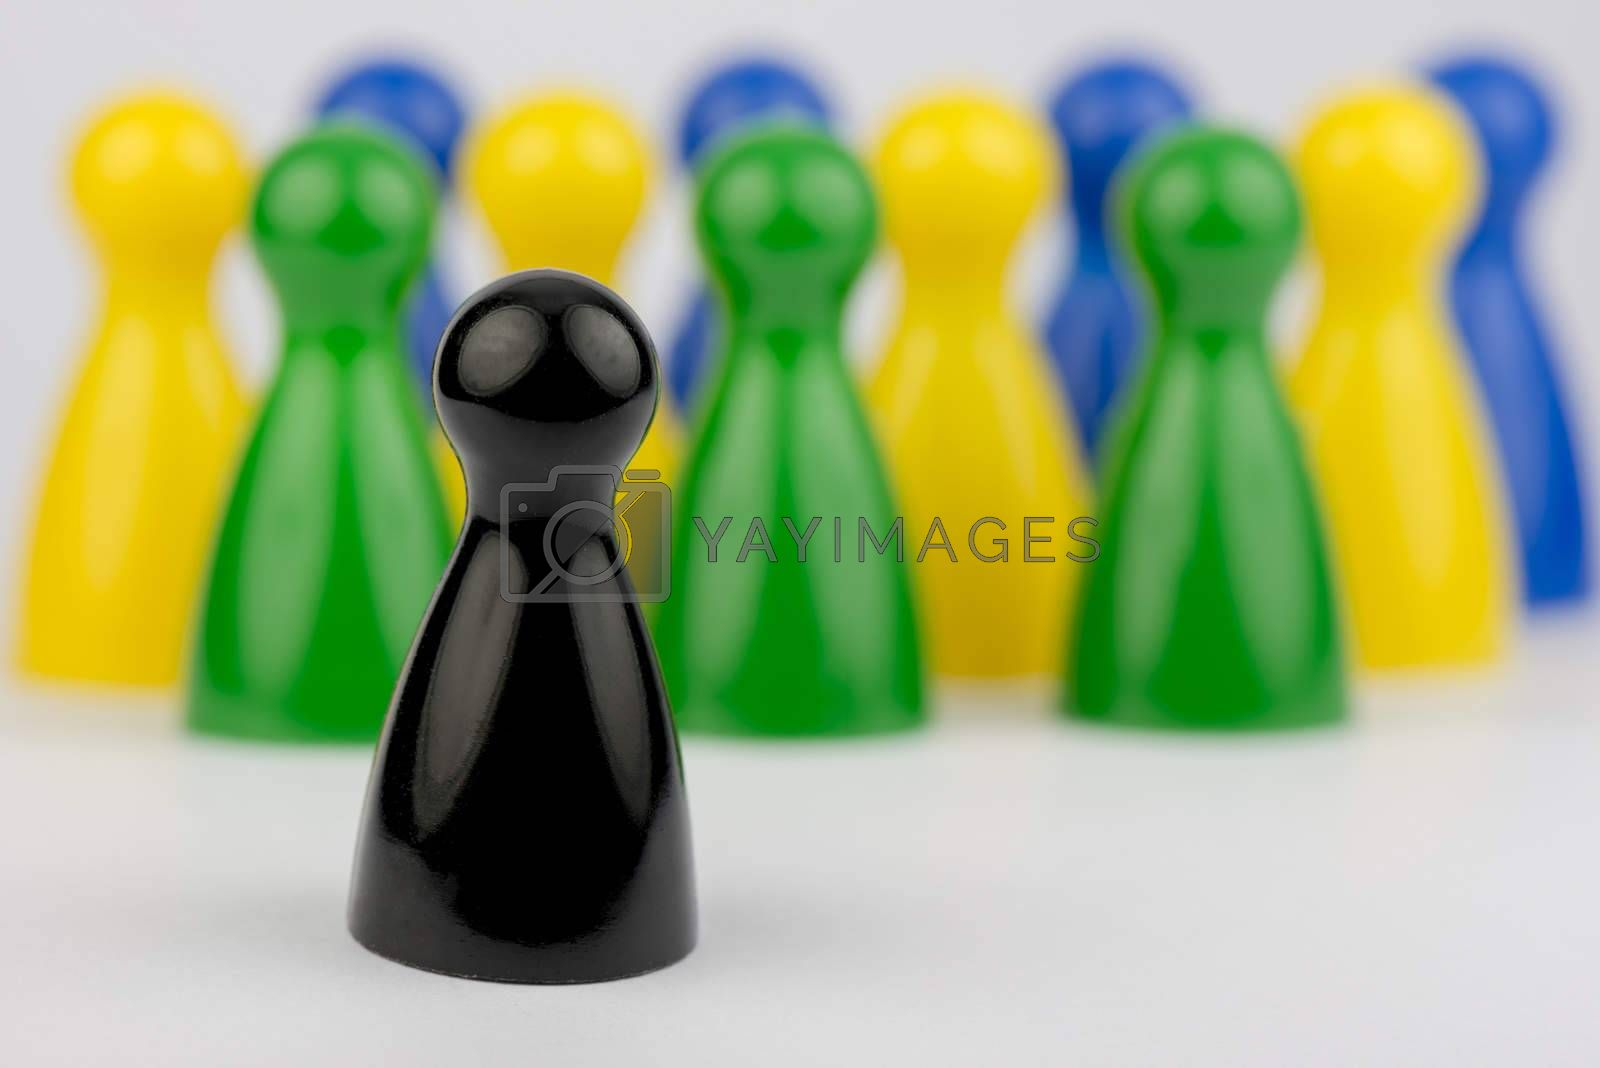 Conceptual game pawns that depict the concept different